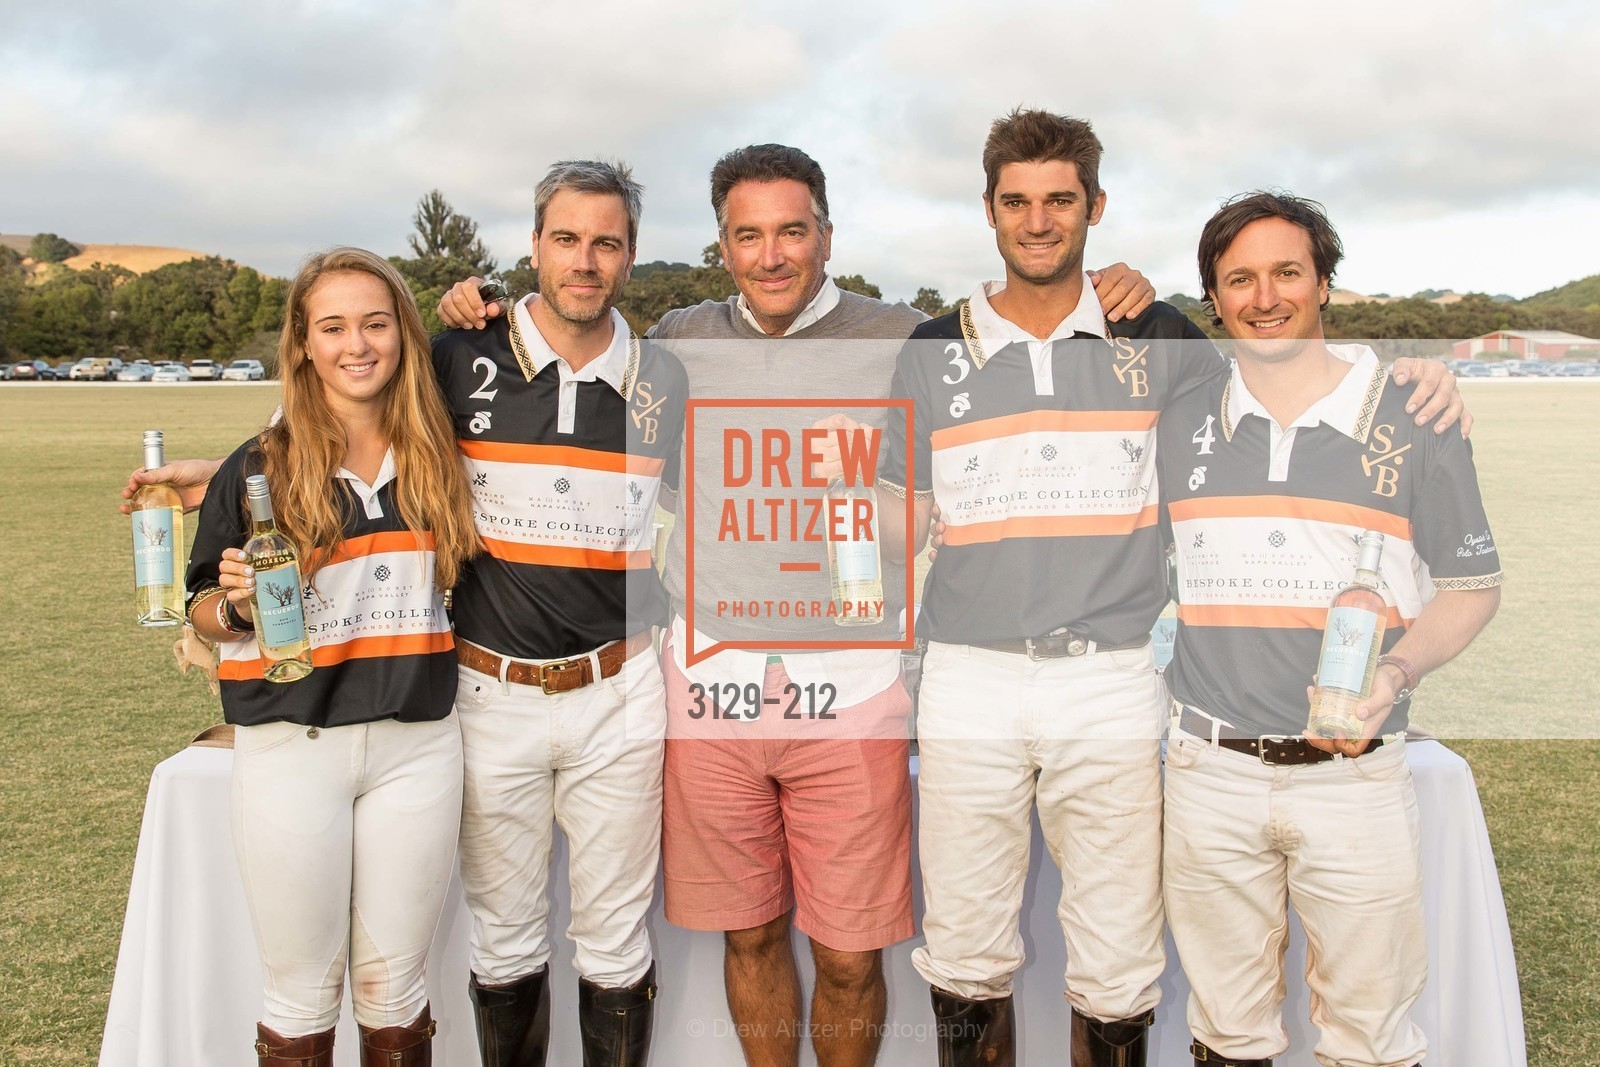 Fiona Bach, Jonathan Haswell, Michael Polenske, Ignacio Deltour, John Bickford, Stick & Ball Oyster Cup Polo Tournament, Cerro Pampa Polo Club, July 25th, 2015,Drew Altizer, Drew Altizer Photography, full-service event agency, private events, San Francisco photographer, photographer California